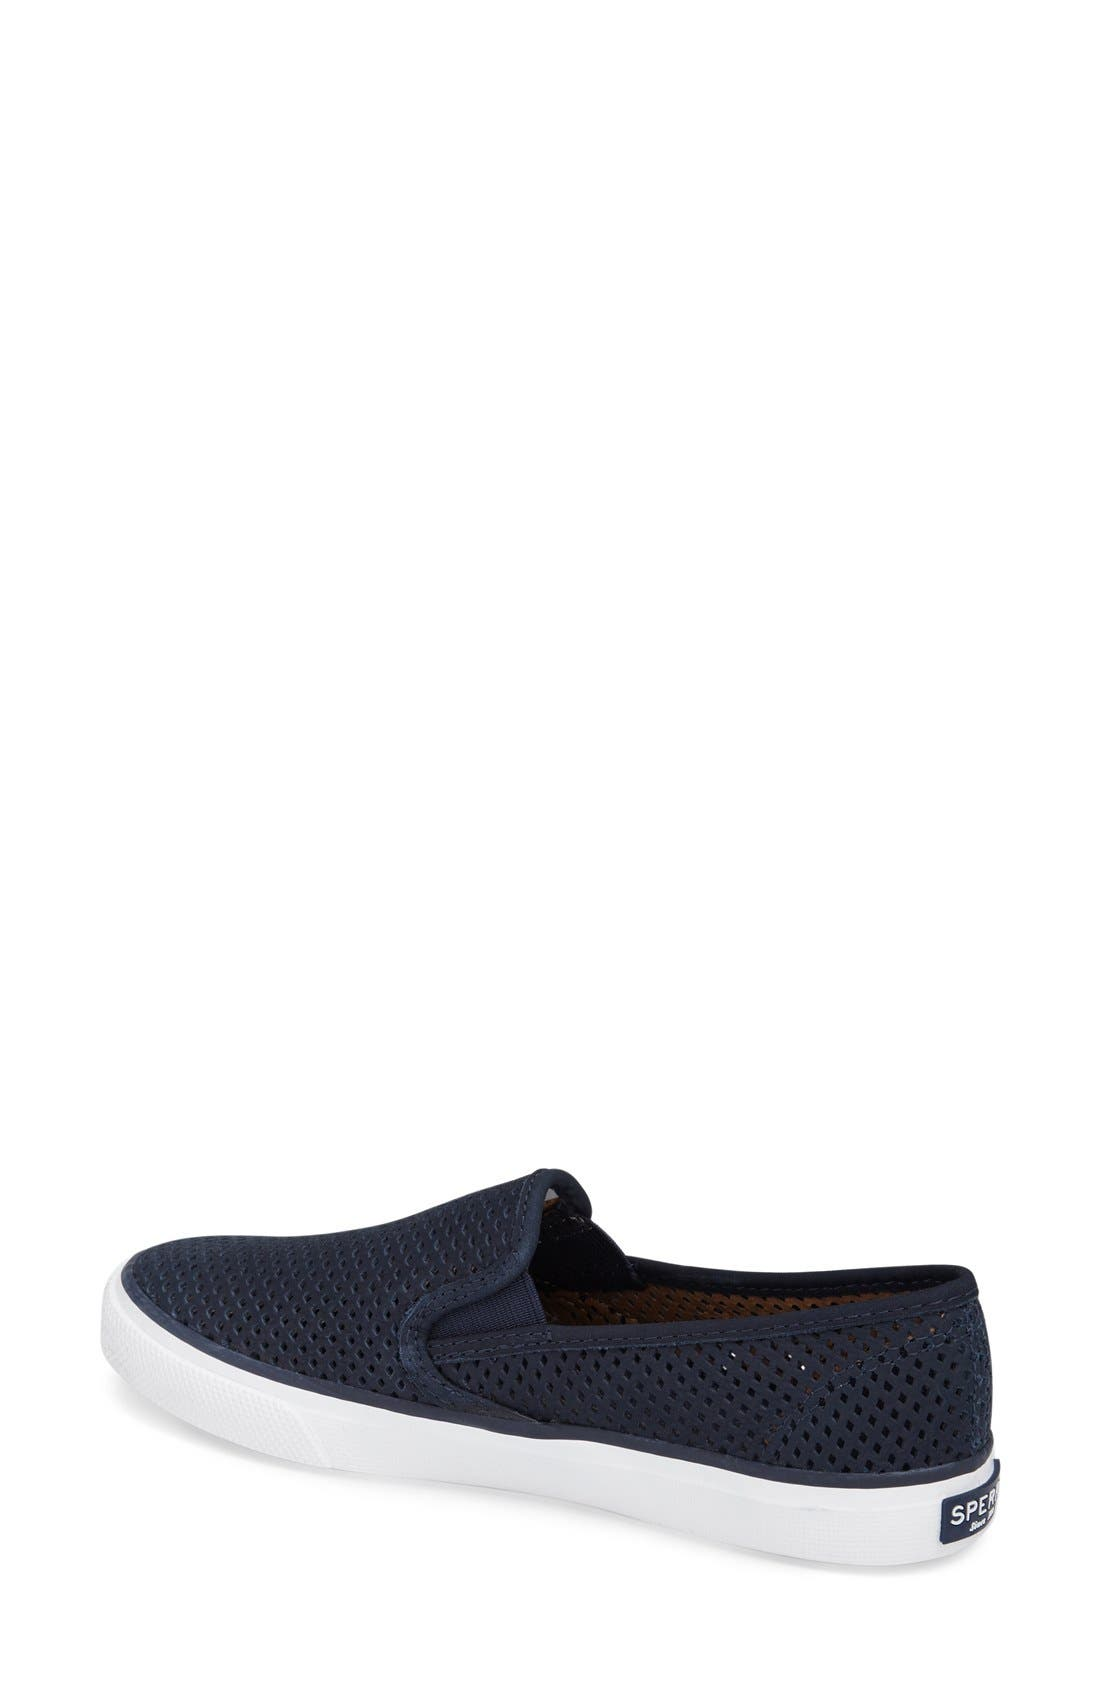 Alternate Image 2  - Sperry 'Seaside' Perforated Slip-On Sneaker (Women)